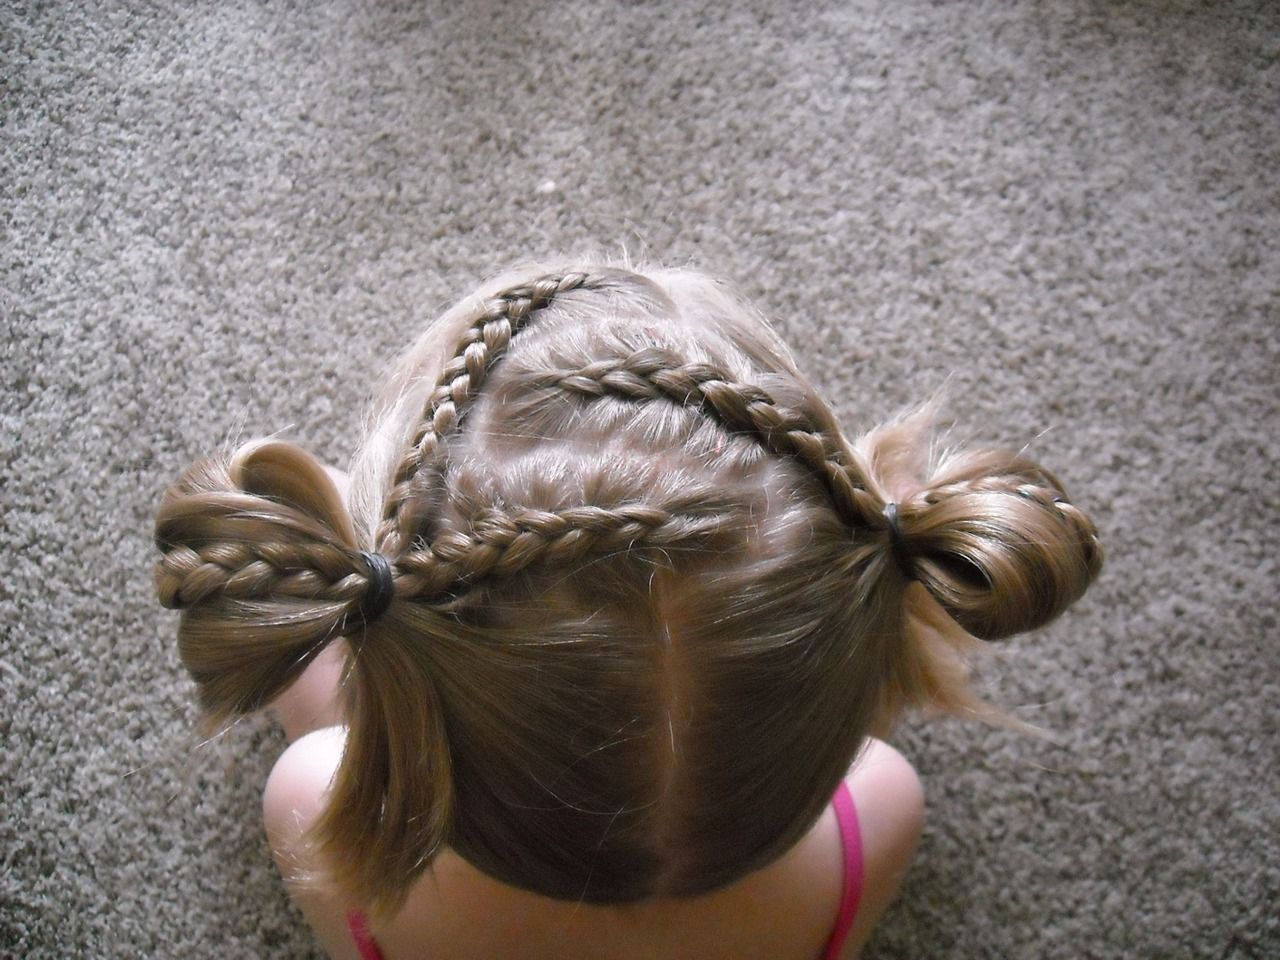 Hair braids little girls pigtails fun childhood memories